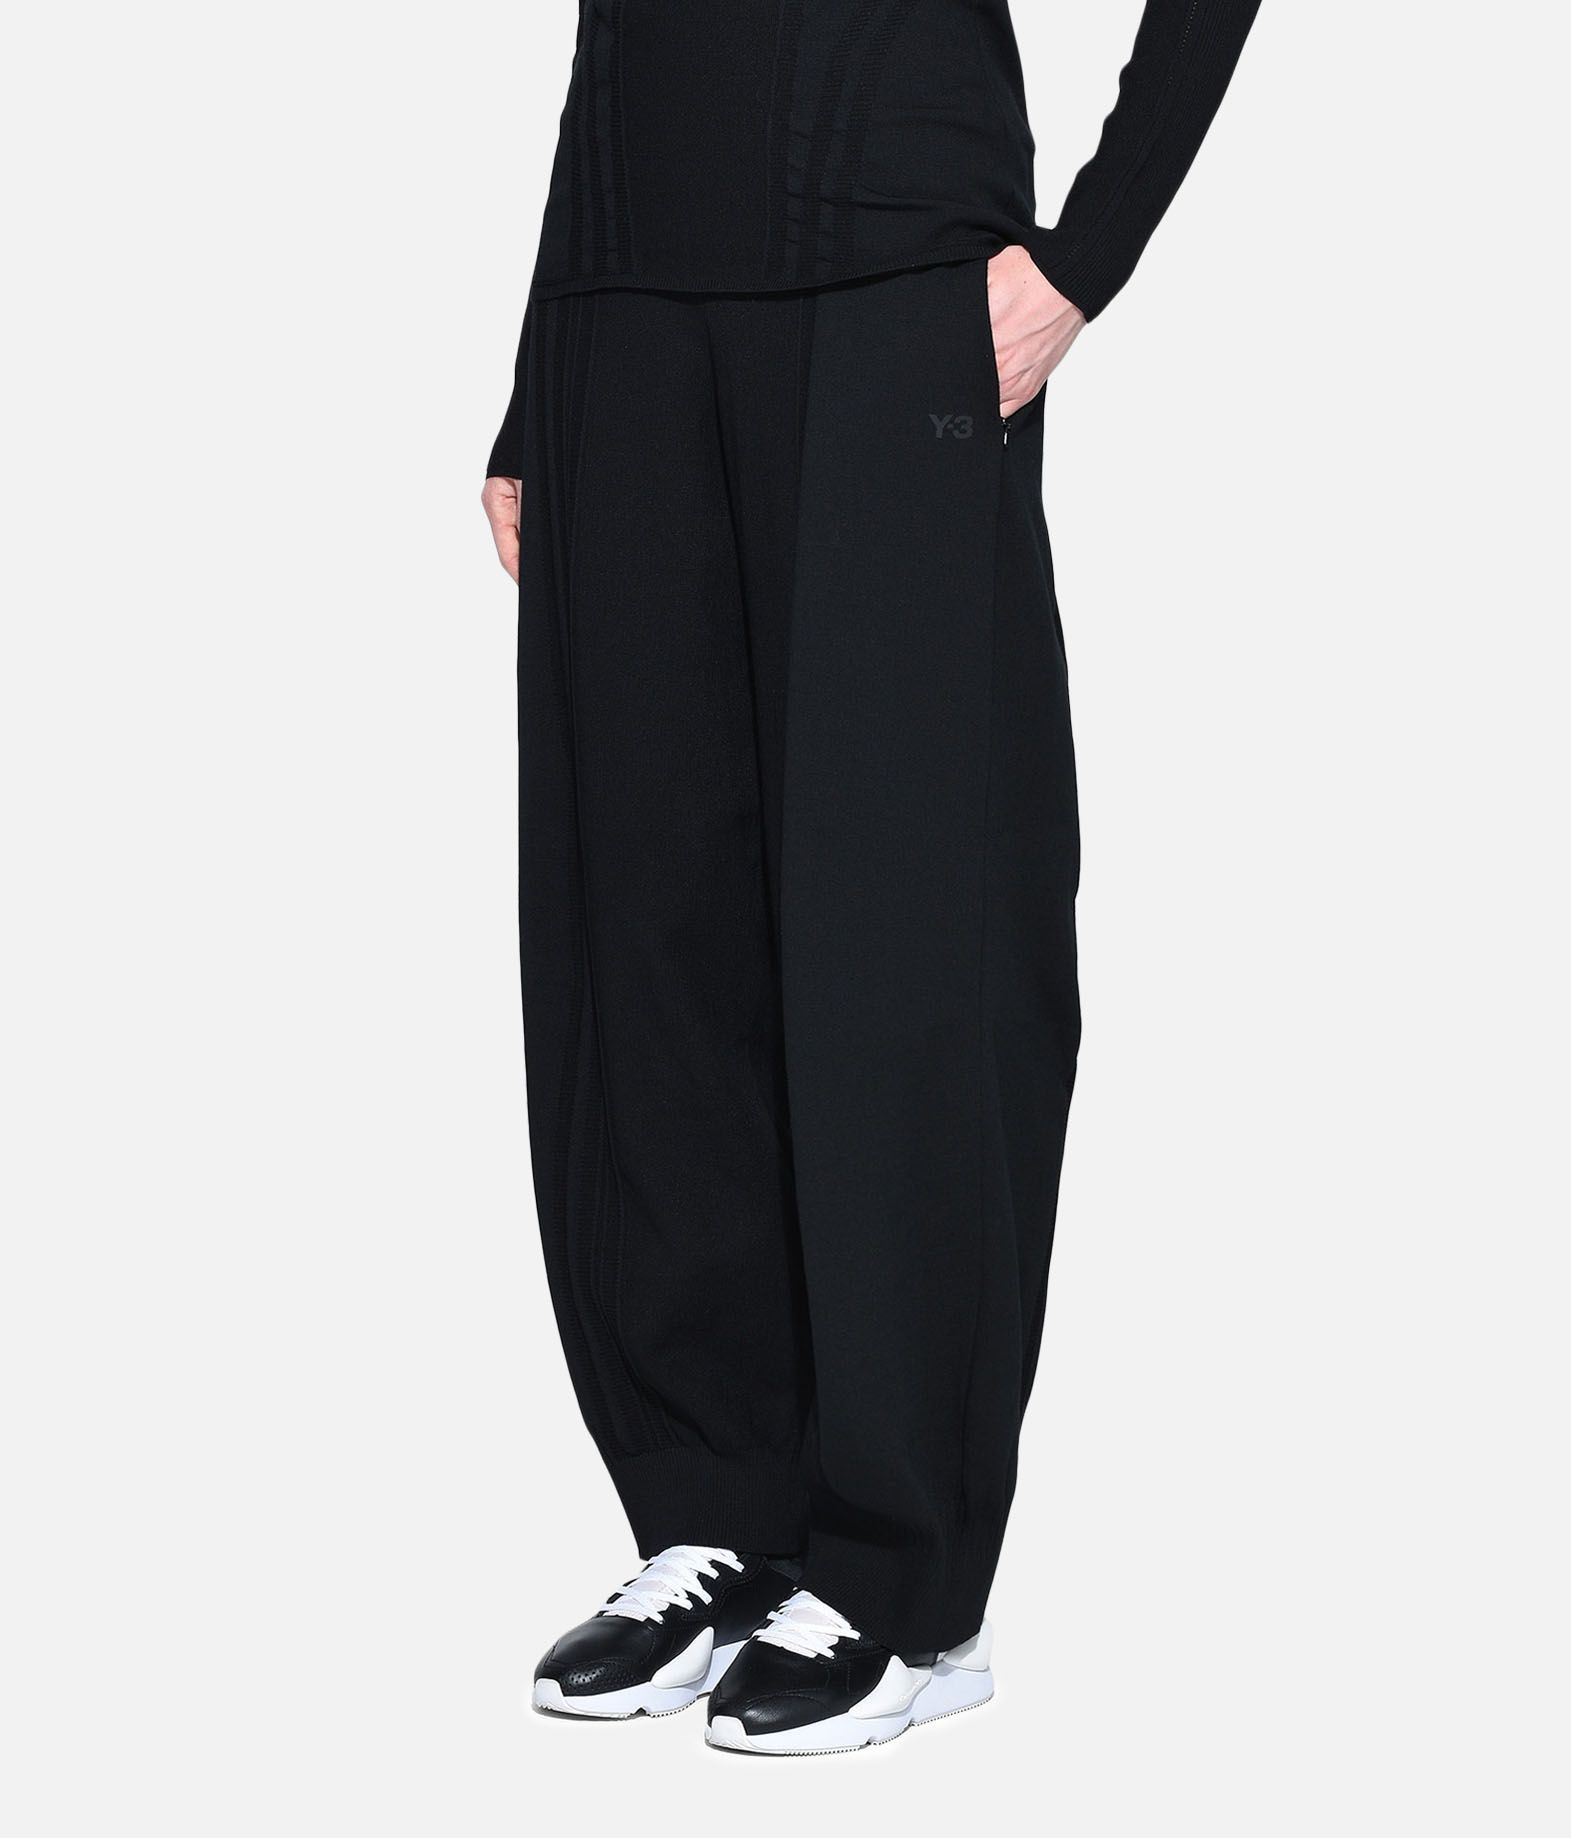 Y-3 Y-3 Tech Wool Pants Casual pants Woman e